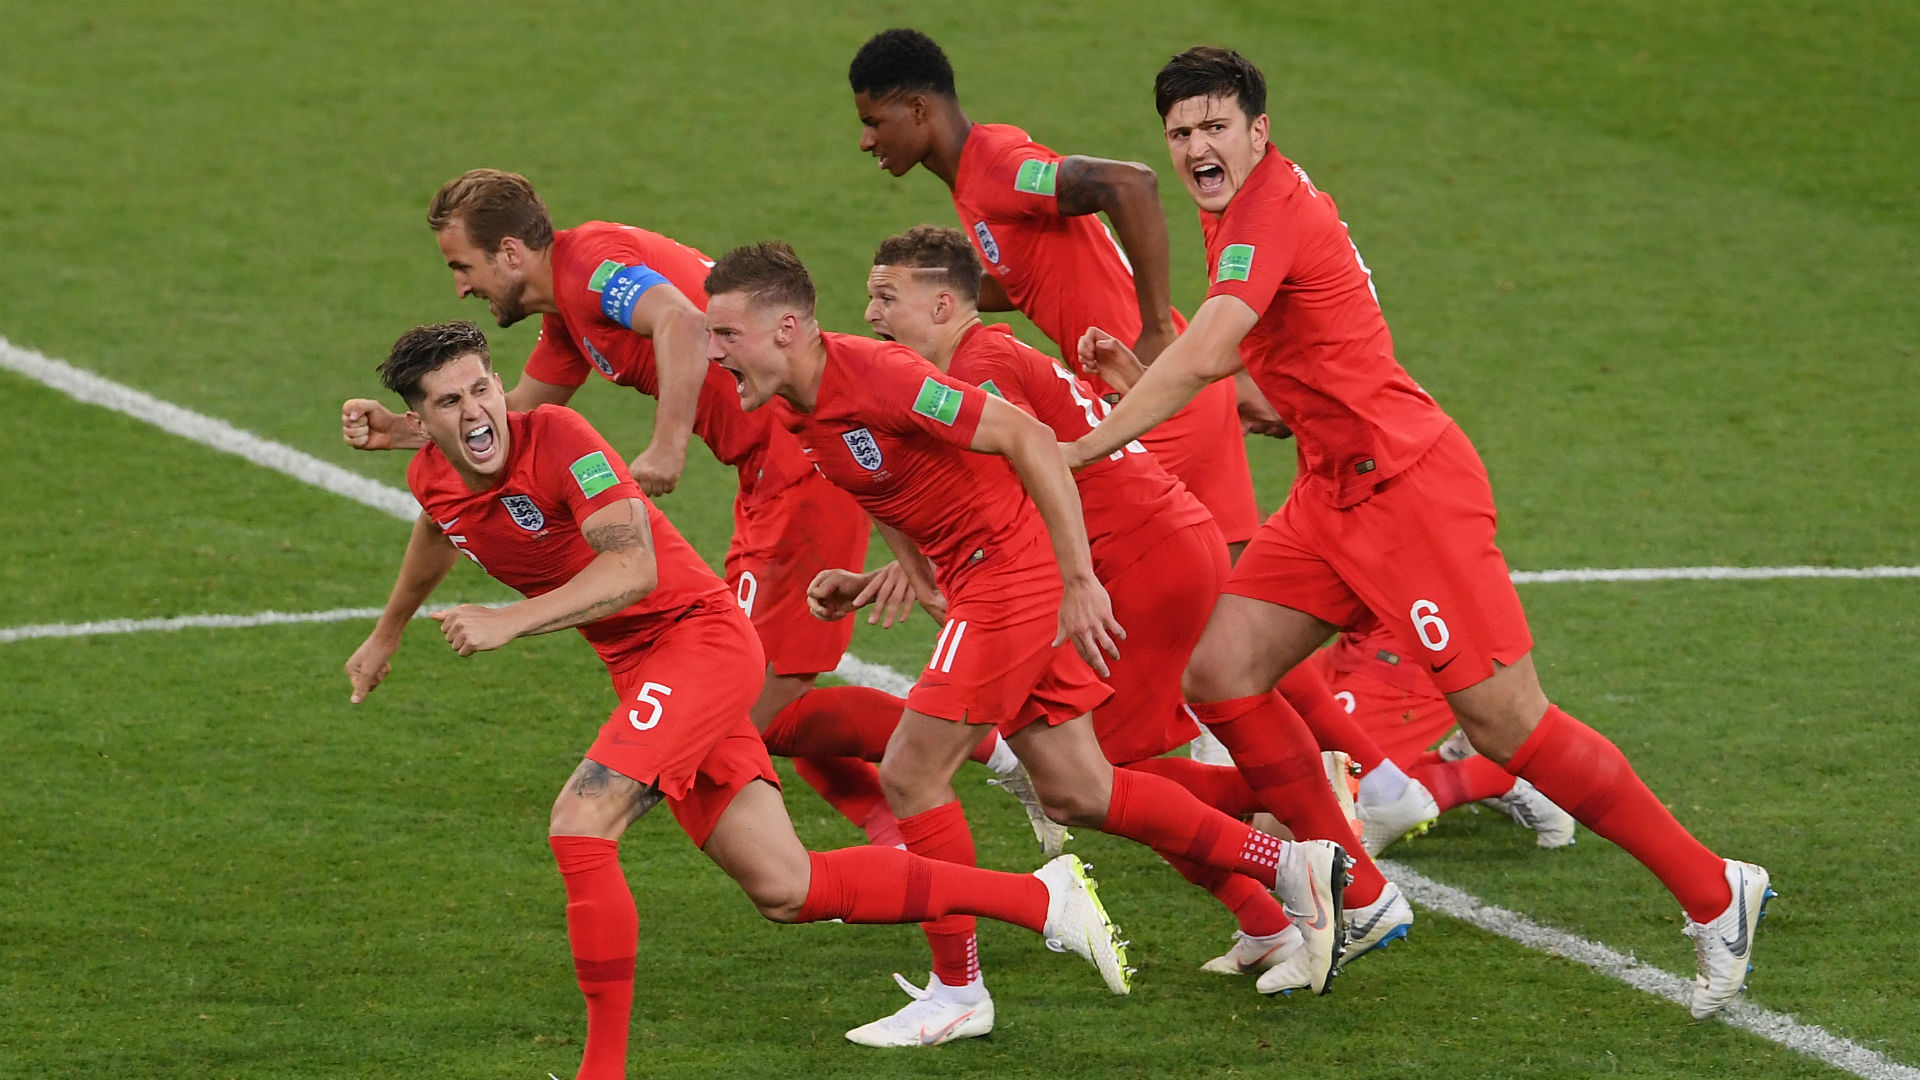 England beats Sweden 2-0 to reach World Cup semis